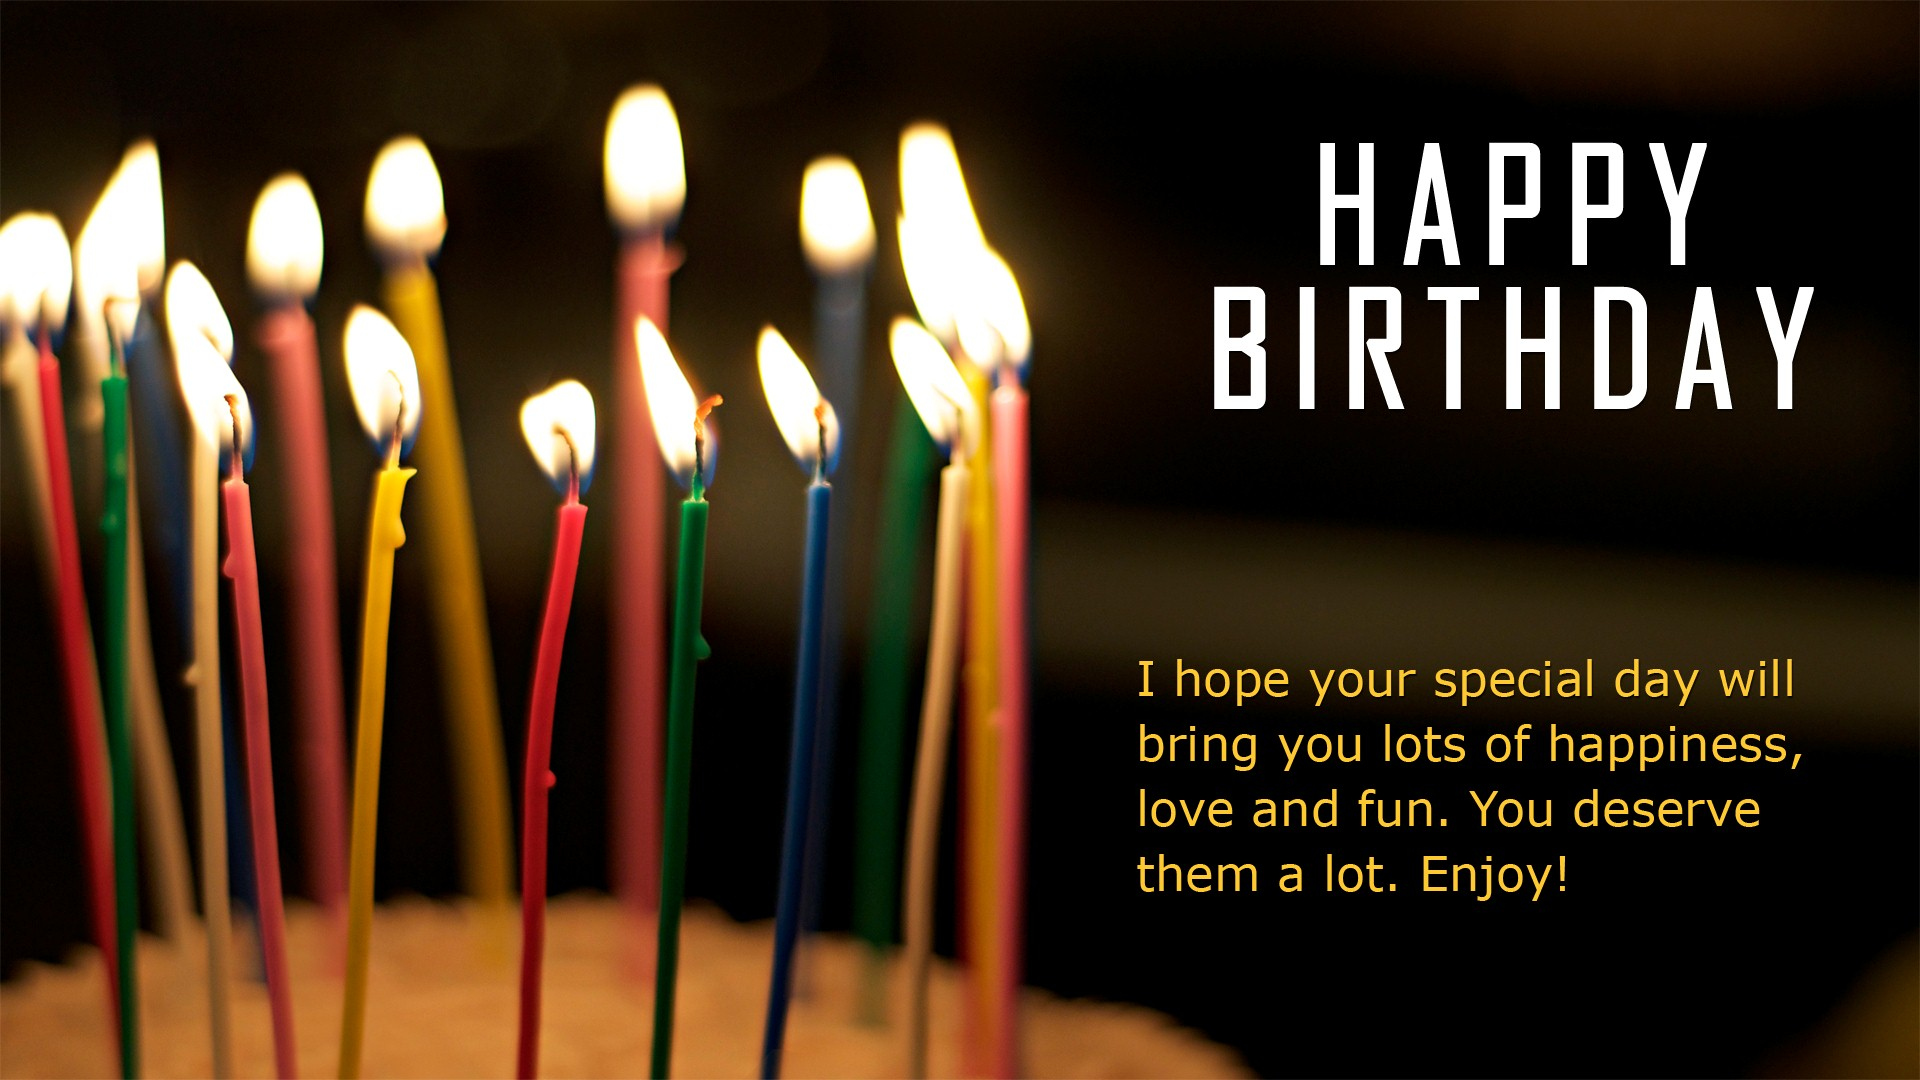 happy birthday wishes hd ; Happy_Birthday_Greeting_Wishes_HD_Wallpapers